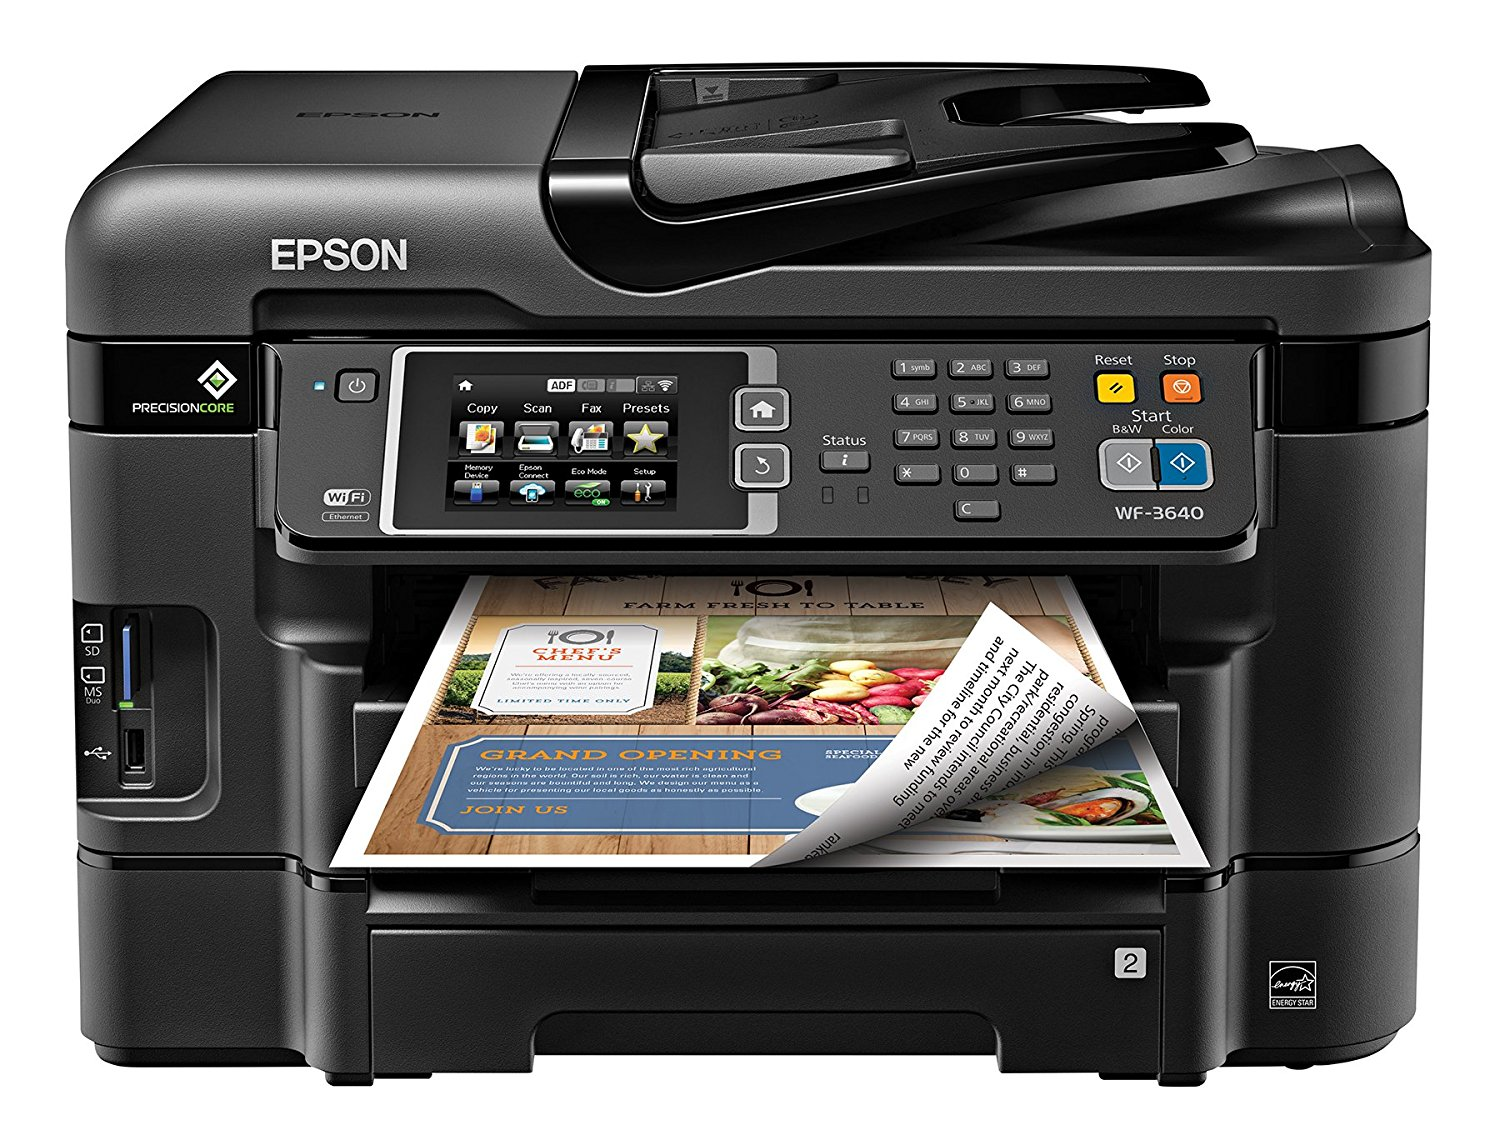 Epson WorkForce WF-3640 Wireless Color All-in-One Inkjet Printer with Scanner and Copier plus XL Ink Multipack